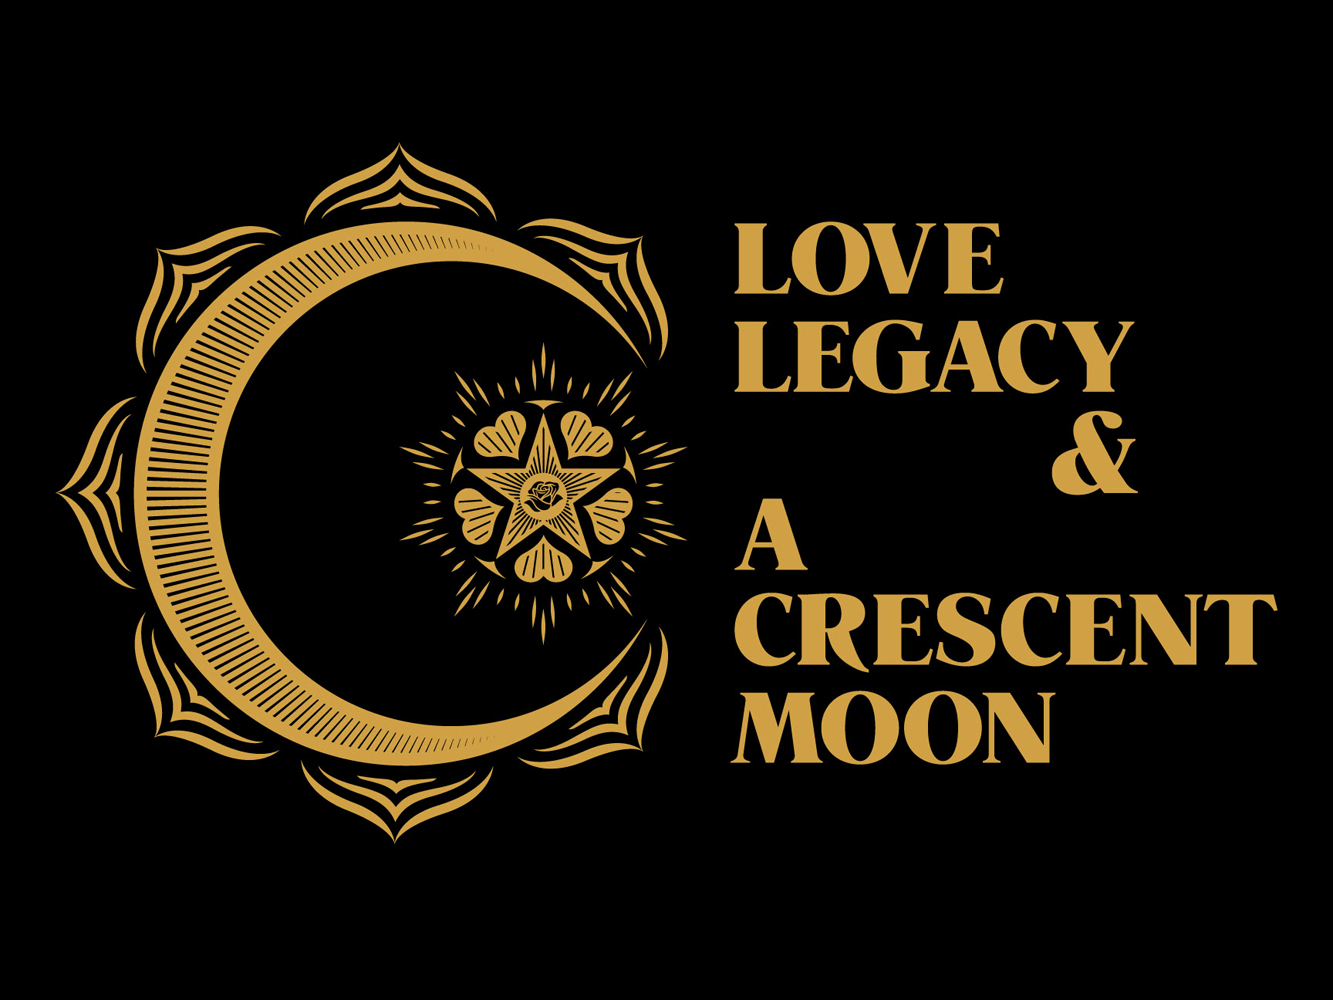 Love, Legacy & A Crescent Moon